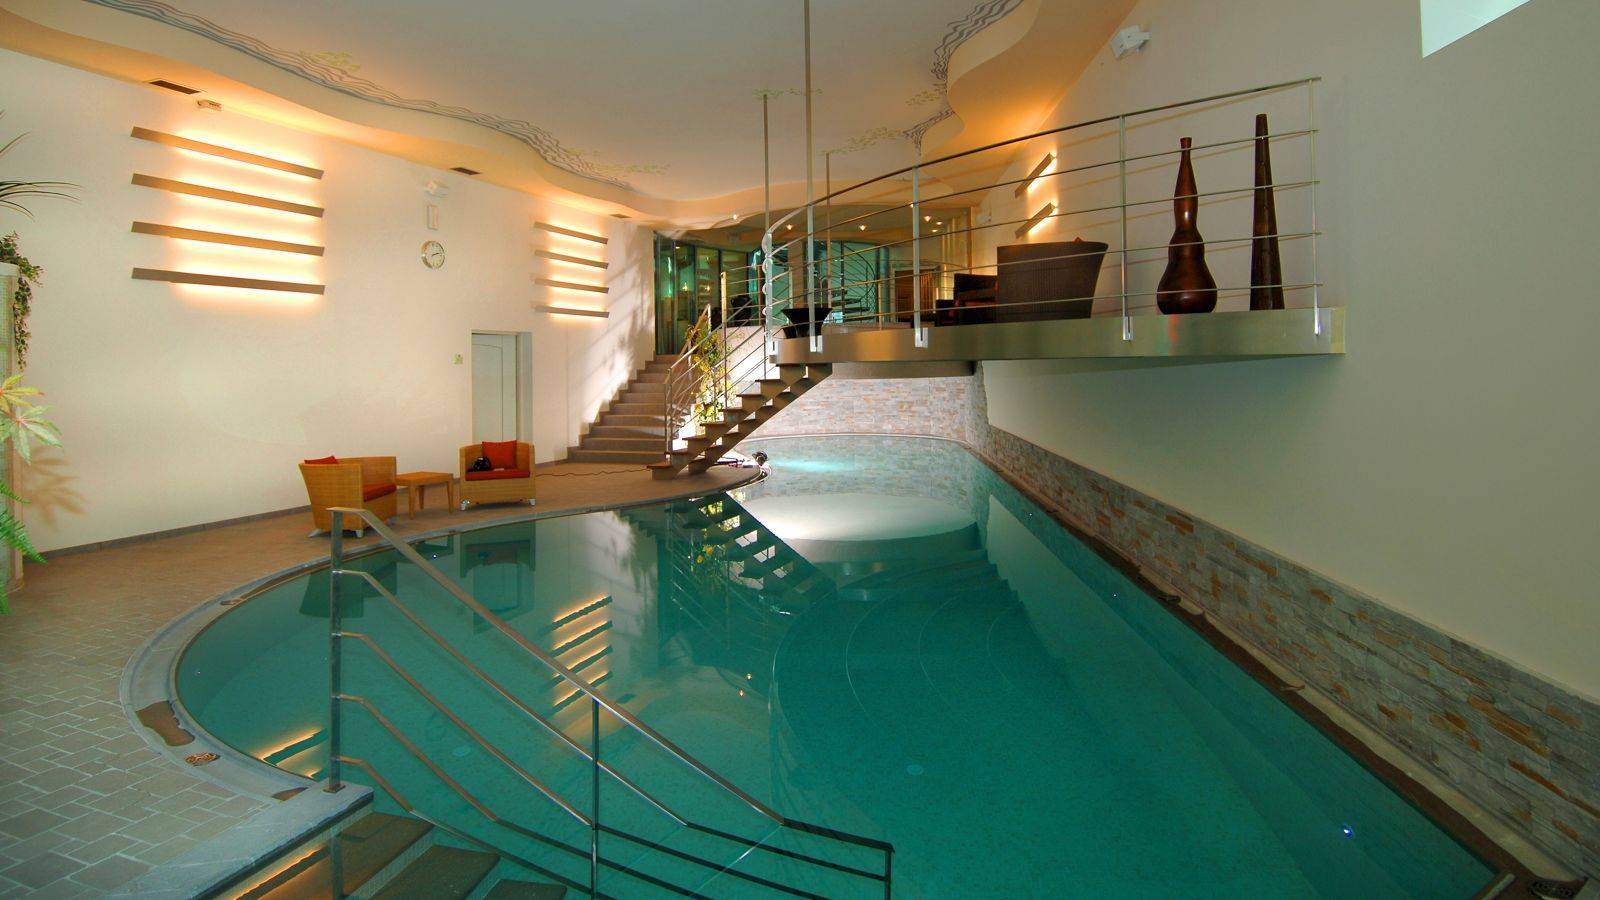 The wellness area with indoor pool of Hotel Monzoni